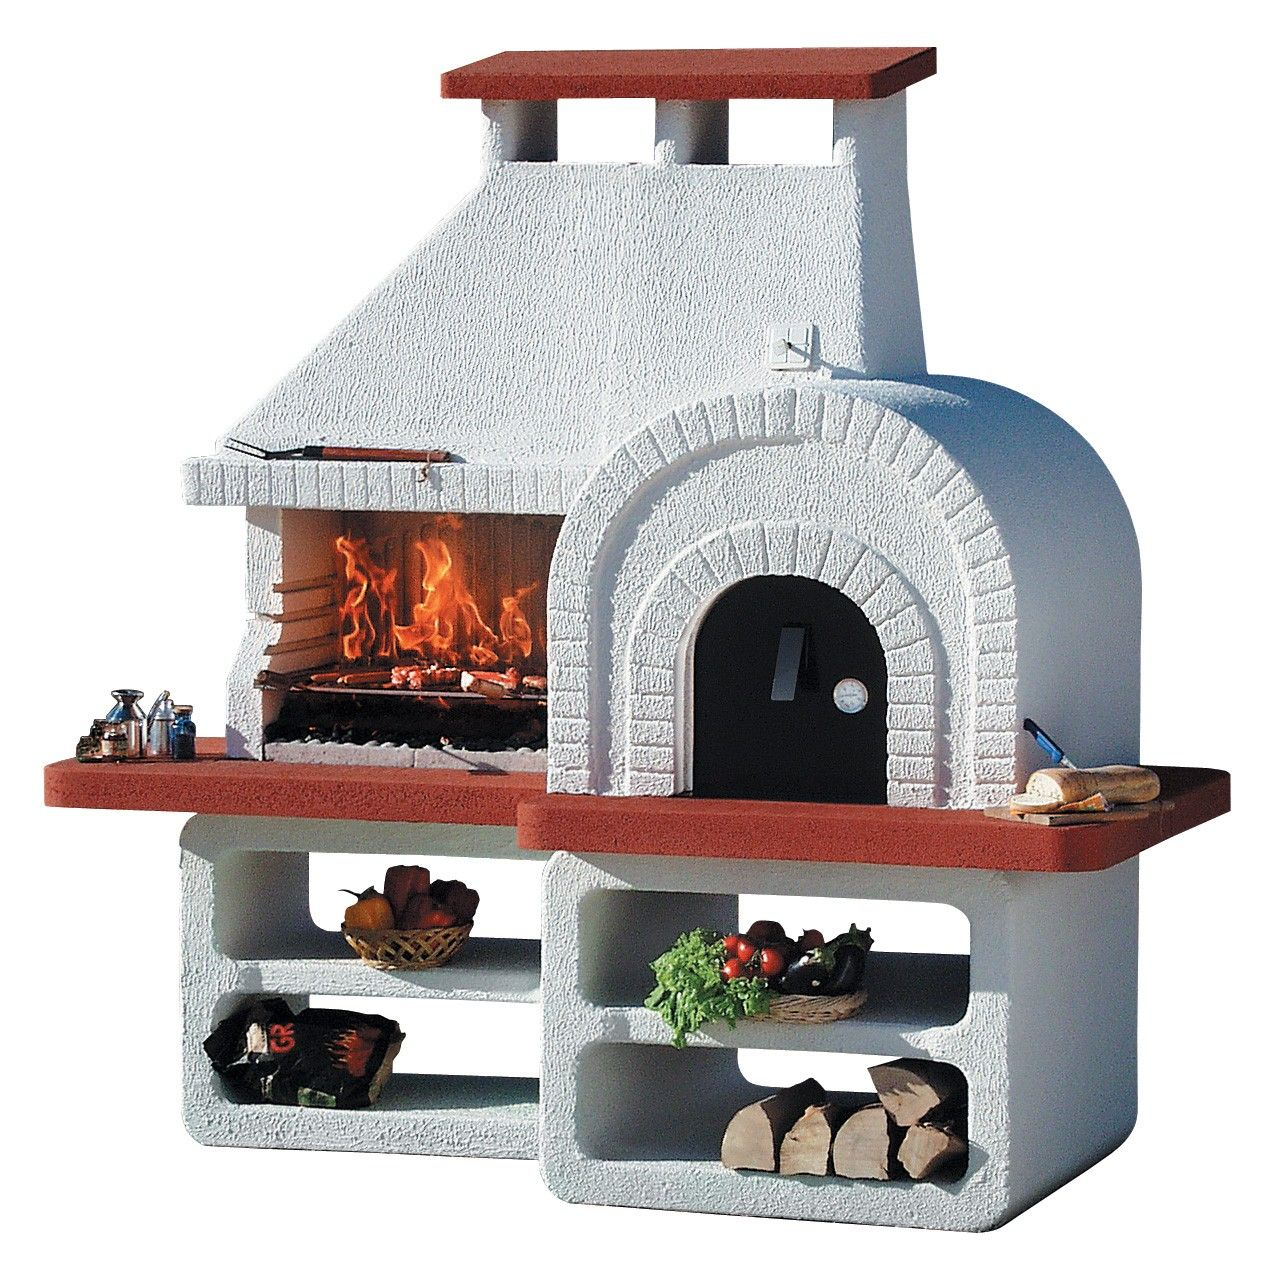 Wood Pizza Oven / Charcoal BBQ Grill Combo | Outdoor Kitchen ...